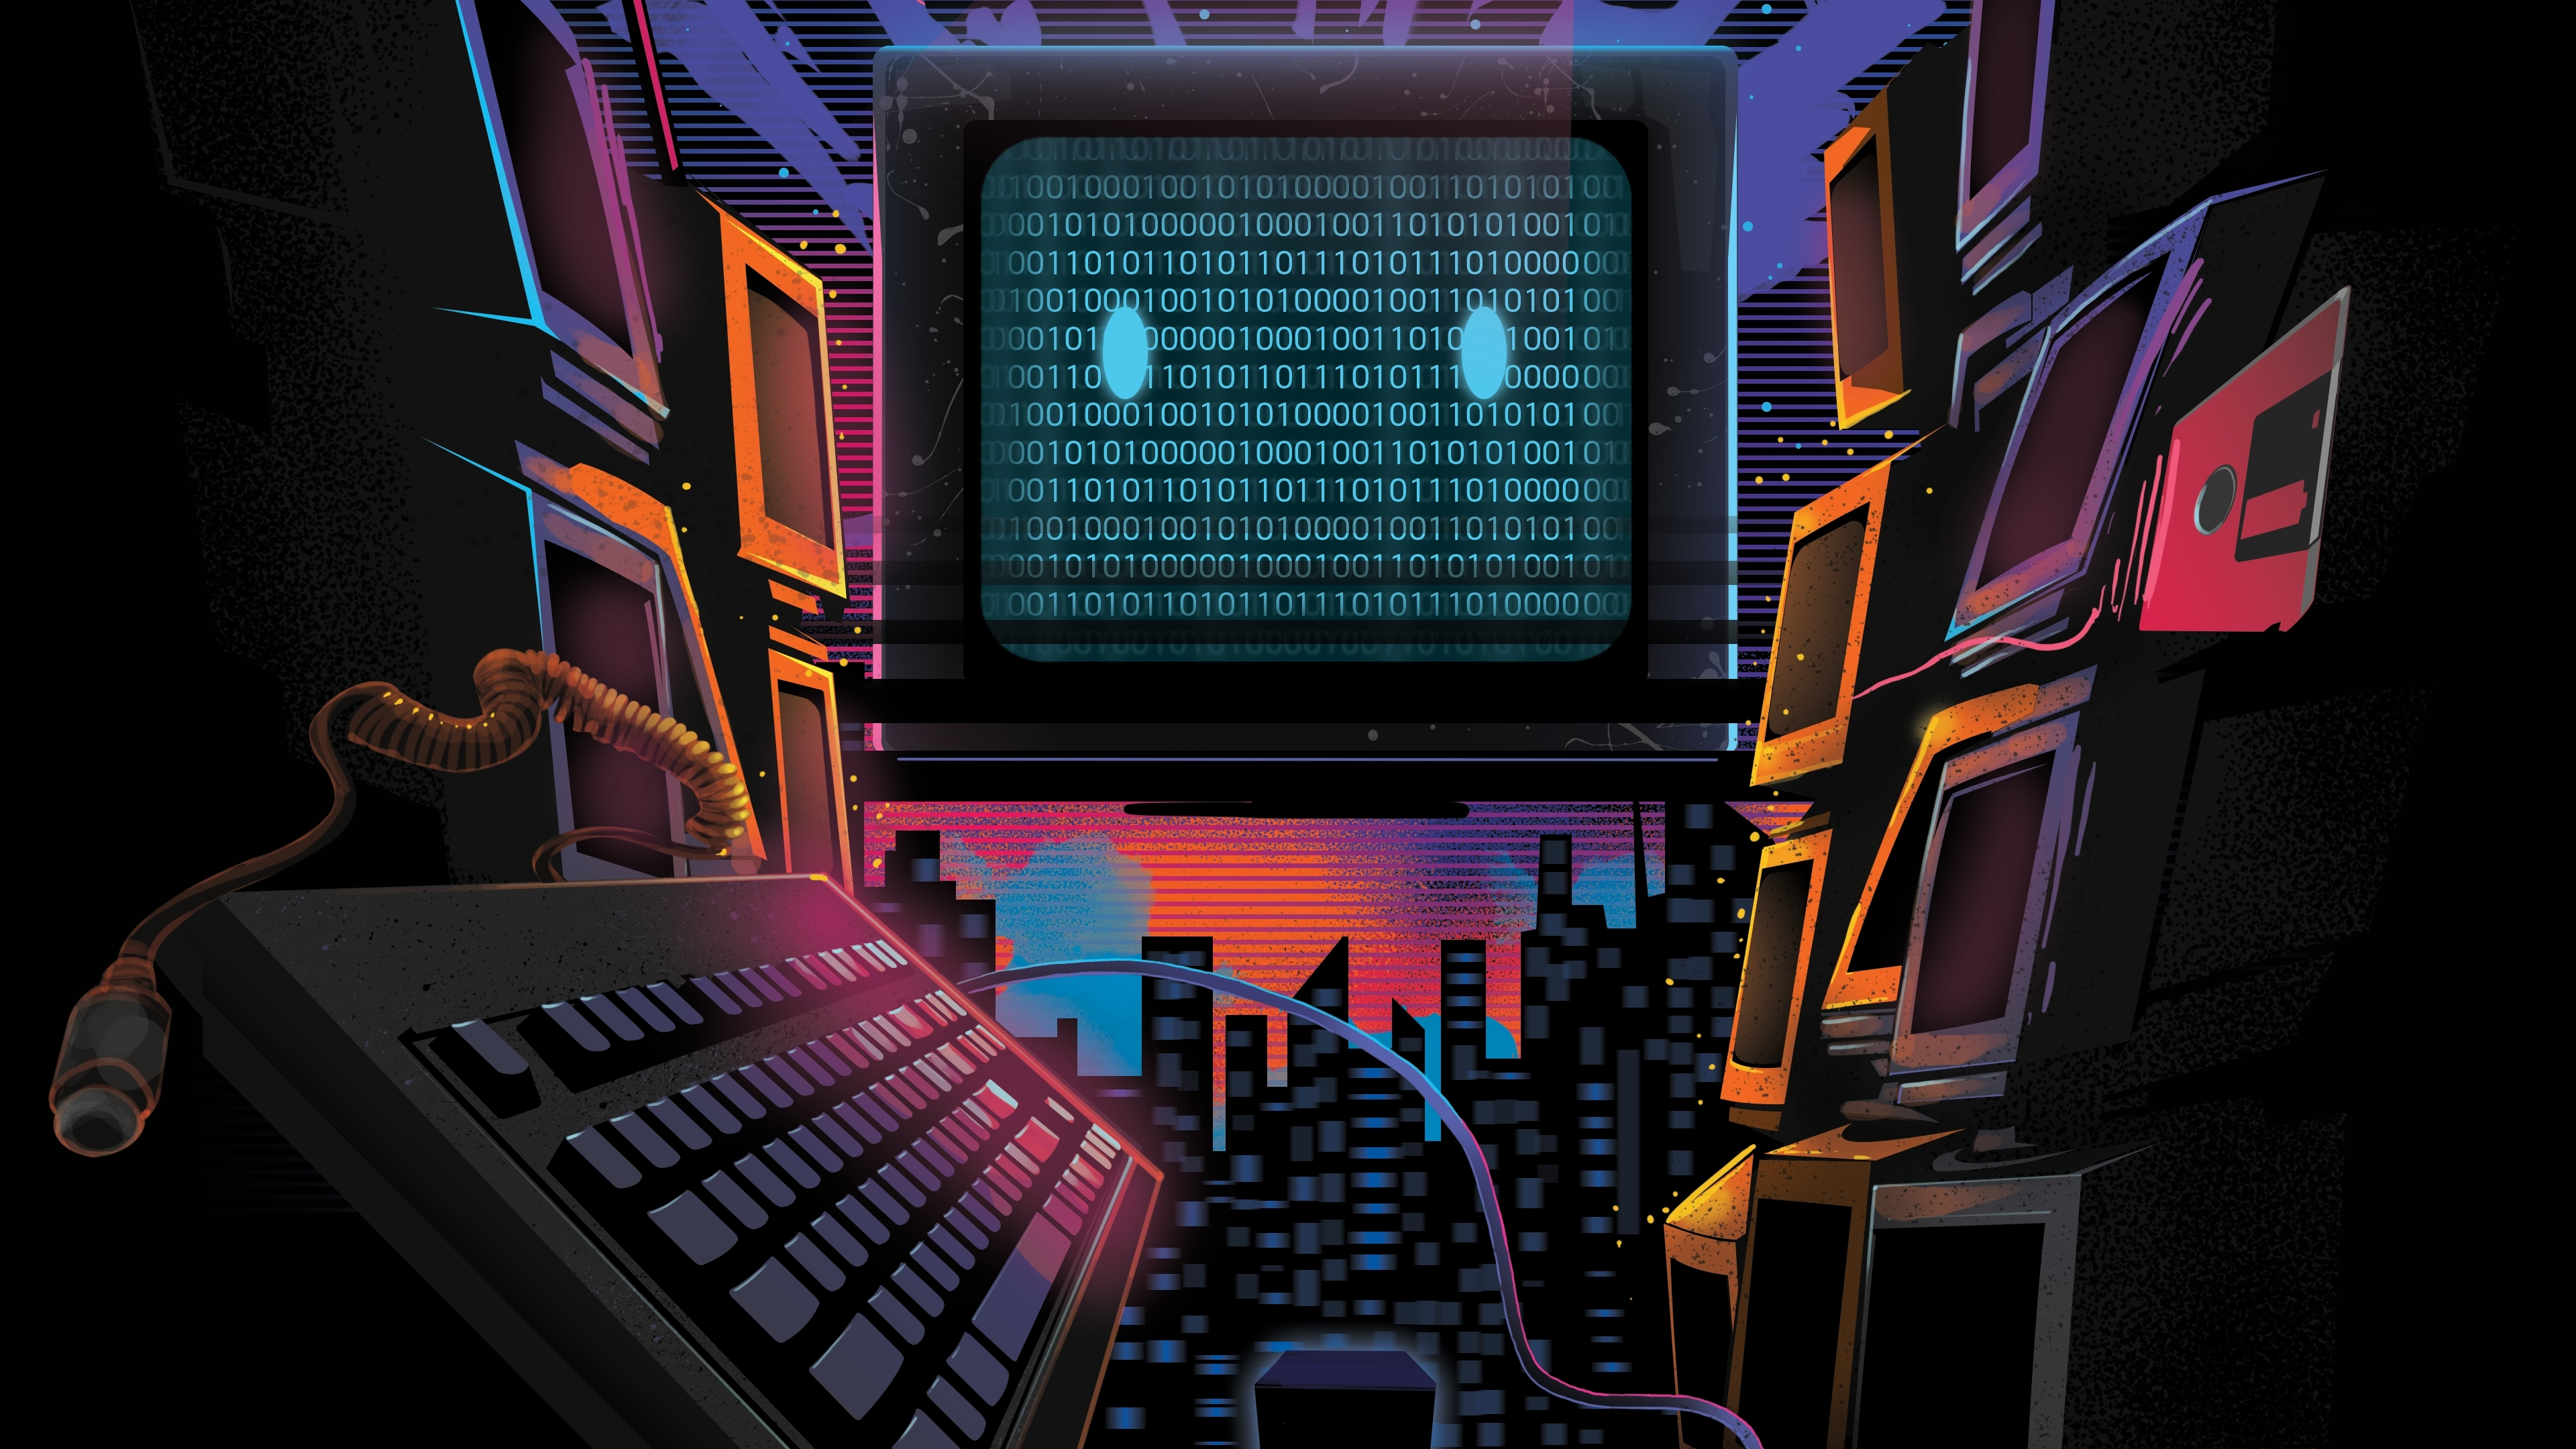 68 retro wave fonds d'écran hd | arrière-plans - wallpaper abyss